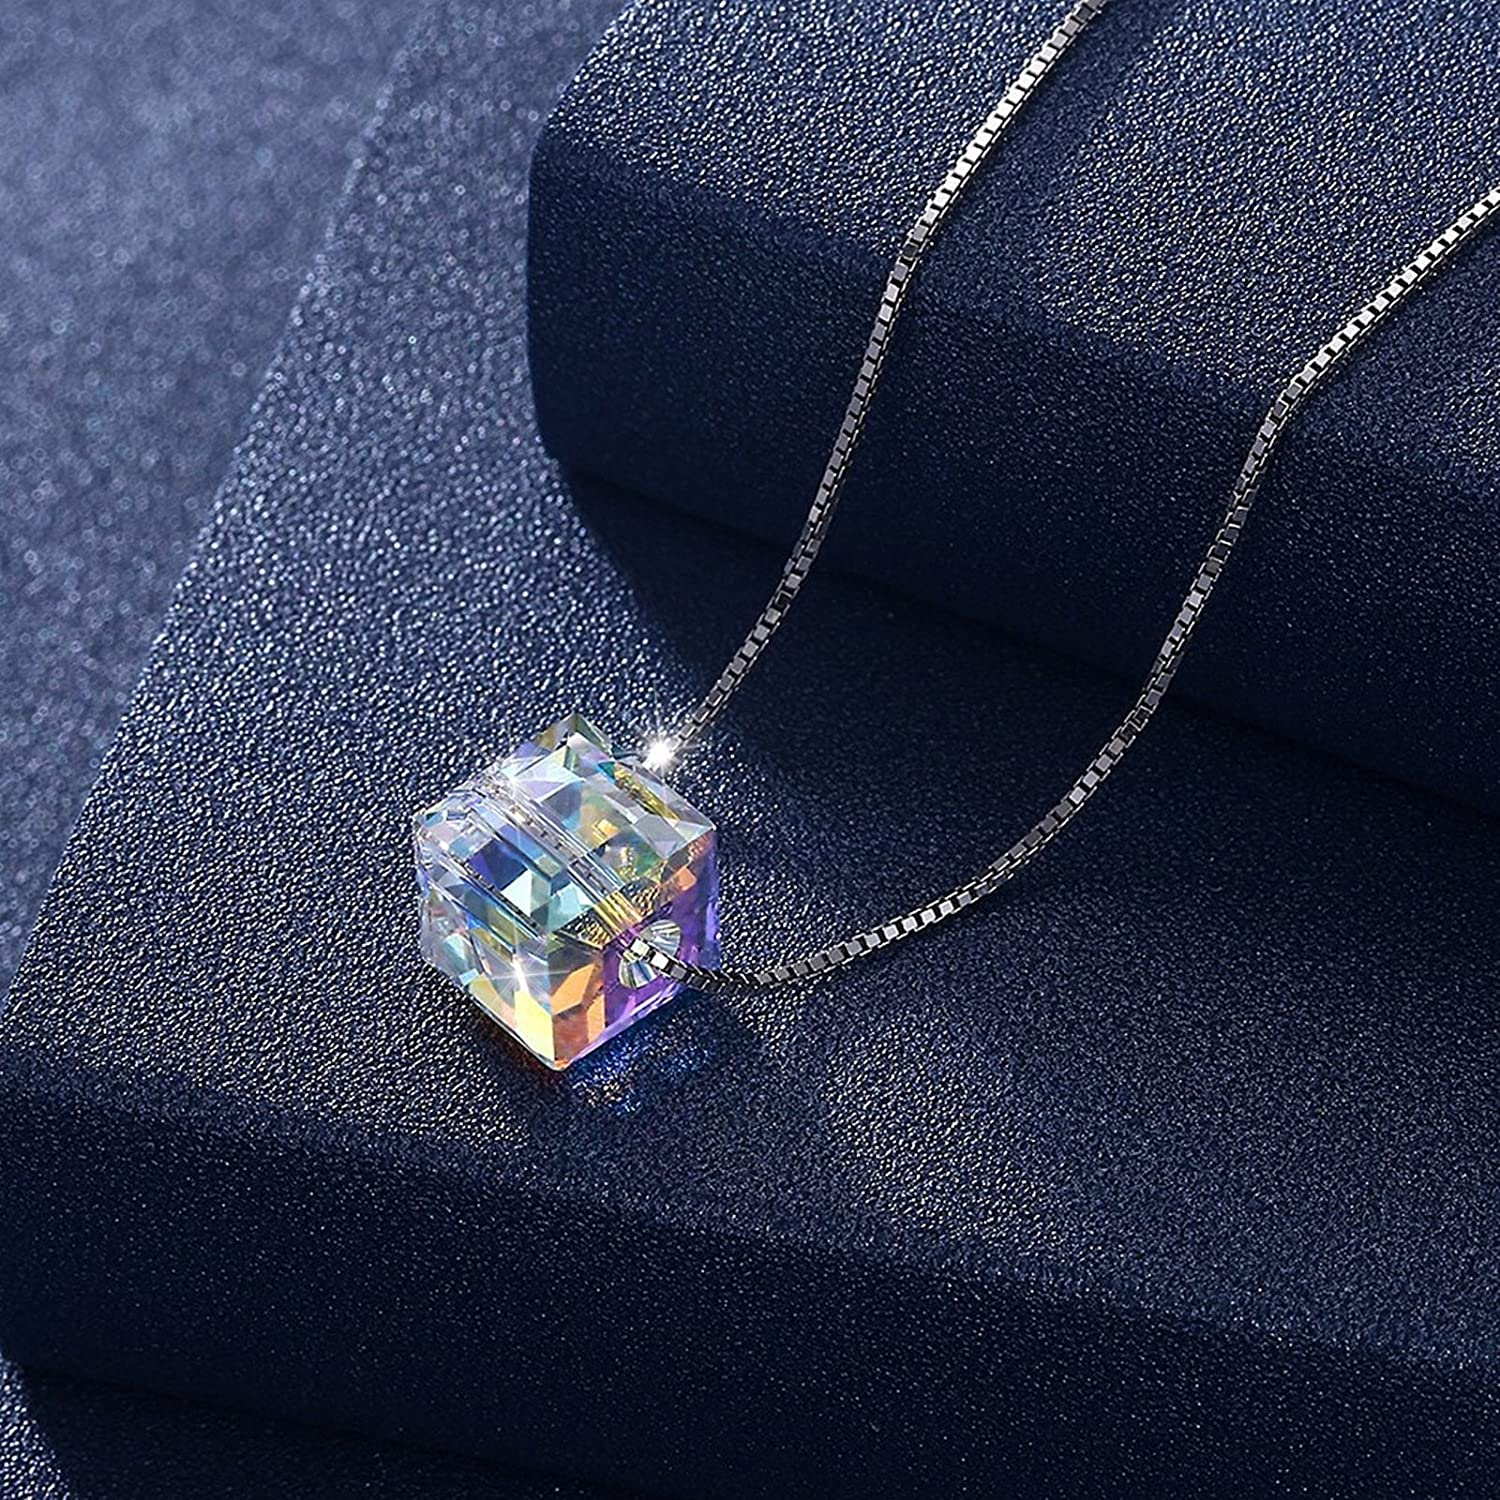 KnSam Pendant Necklace Chain Necklace 925 Sterling Silver with 0.8x0.8CM SWA Crystal